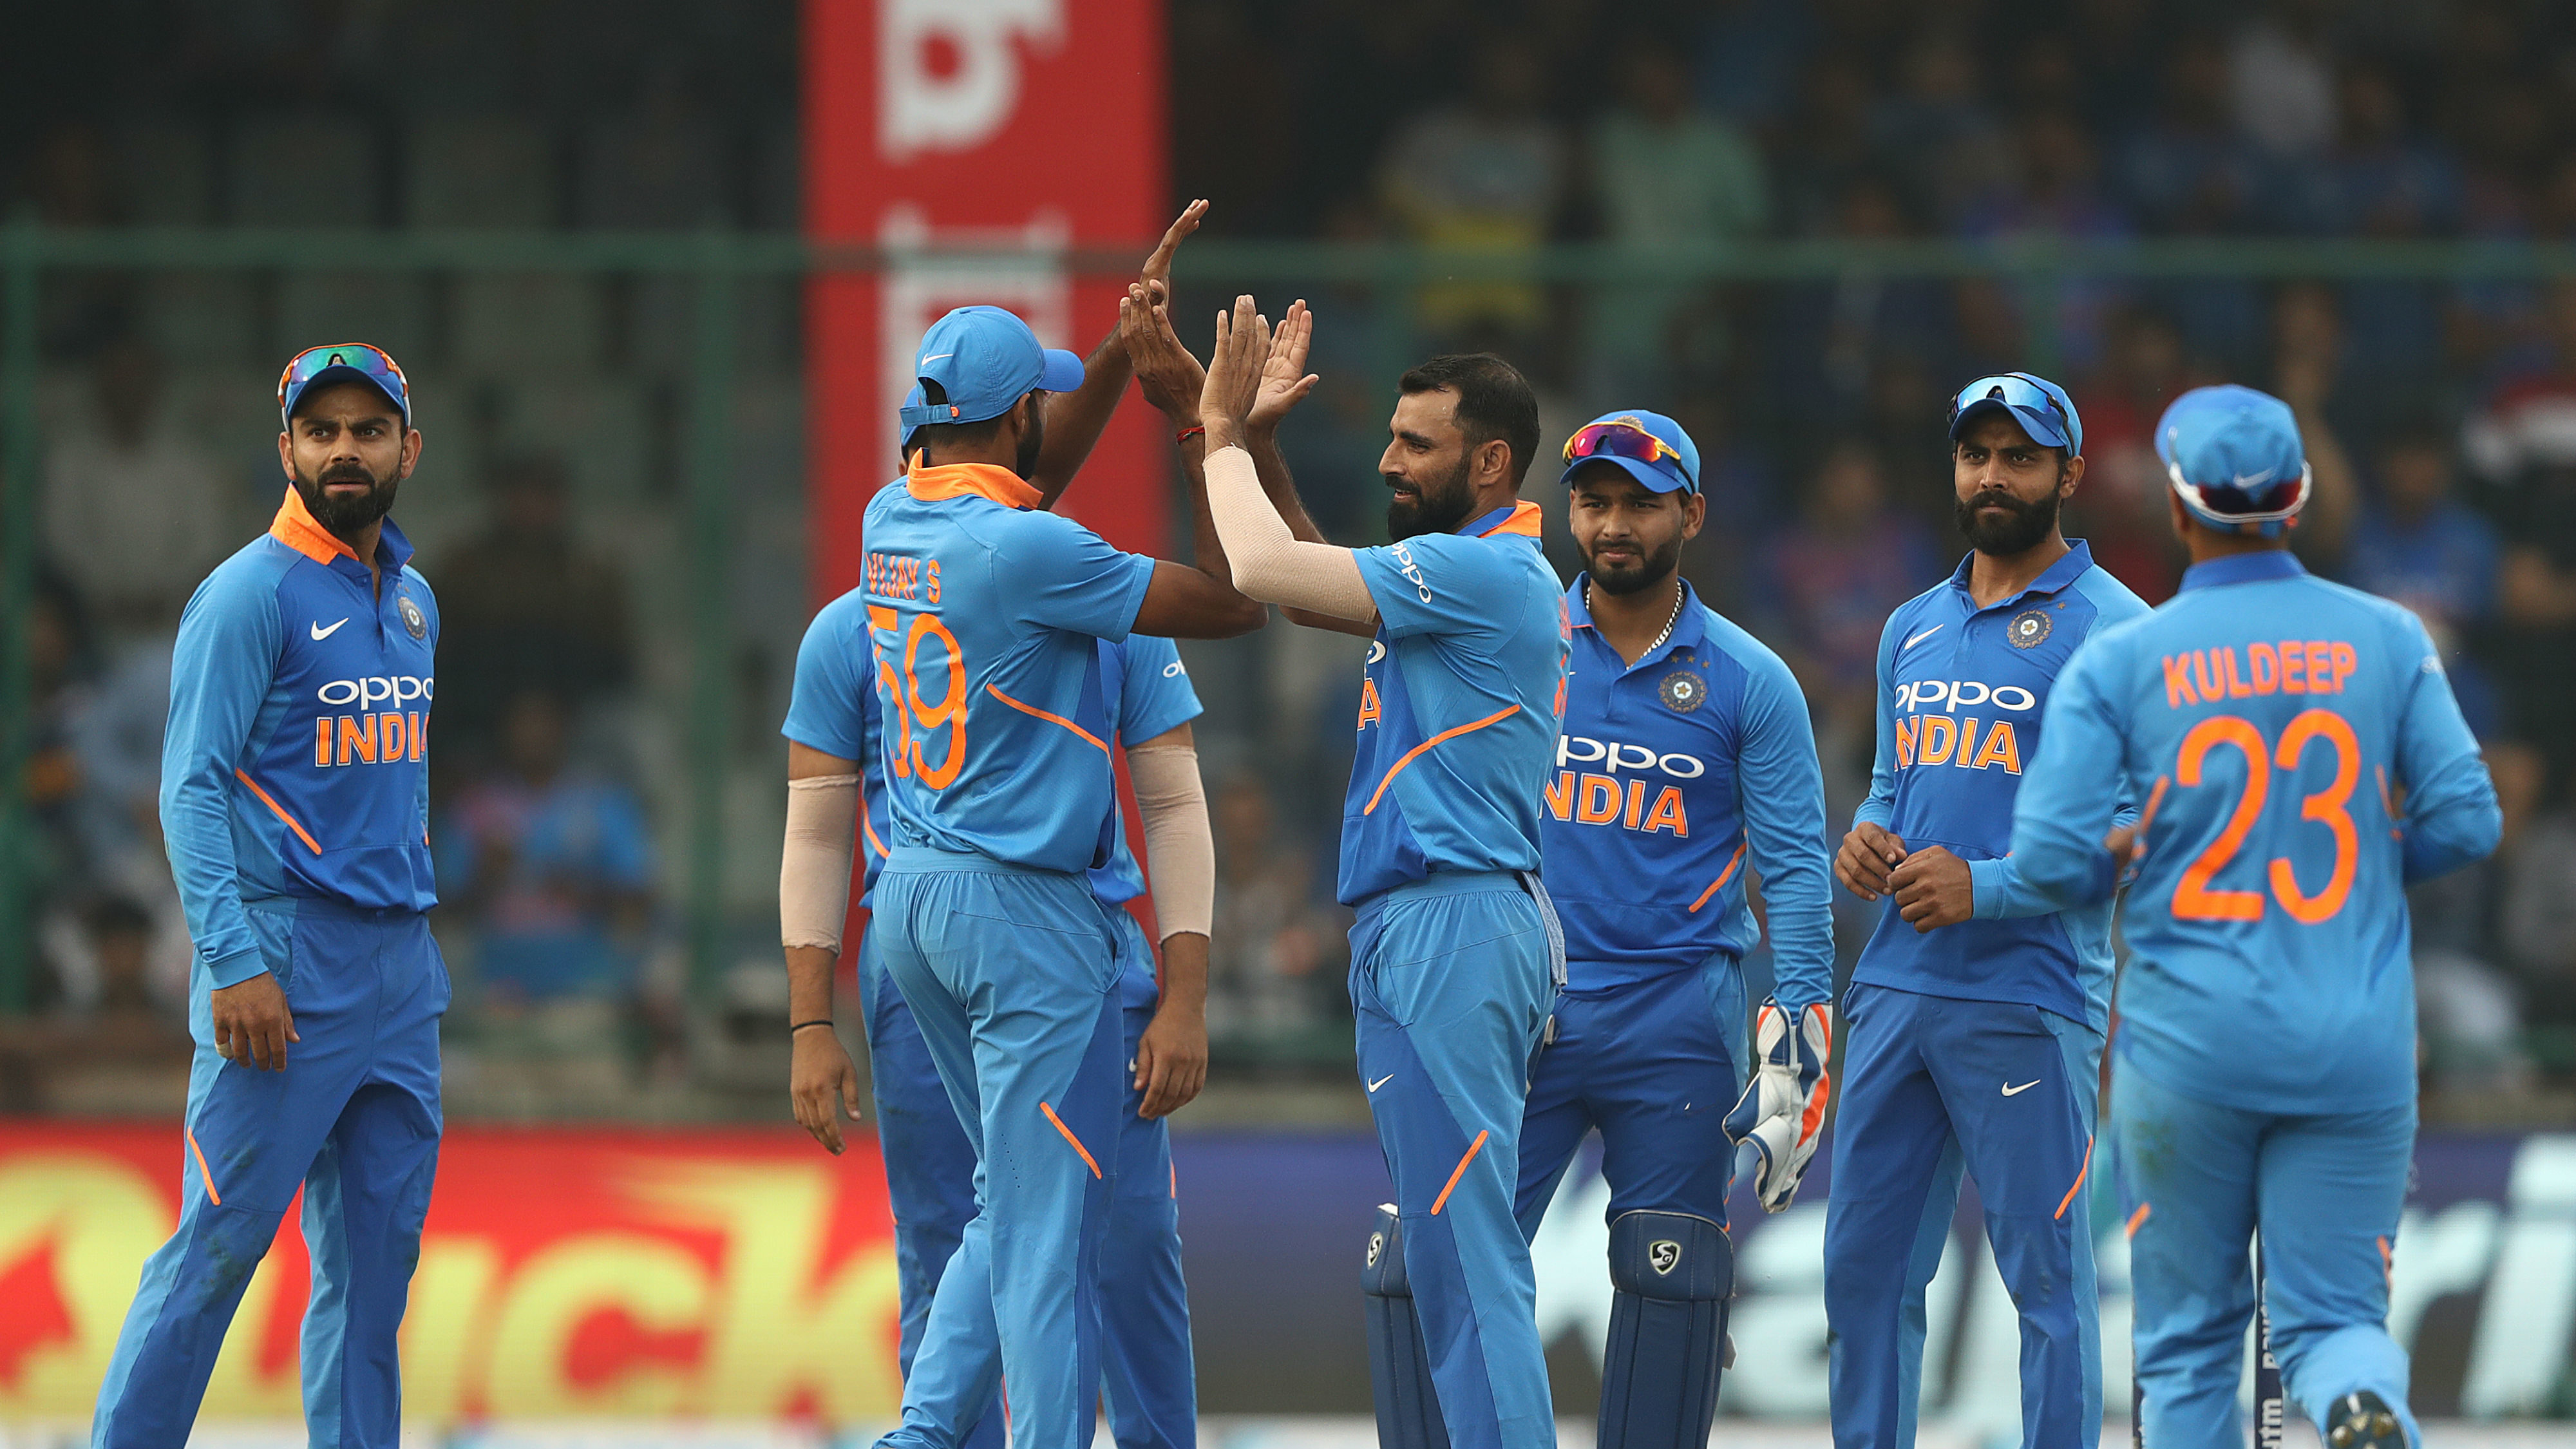 India vs Afghanistan Cricket Match Live Score